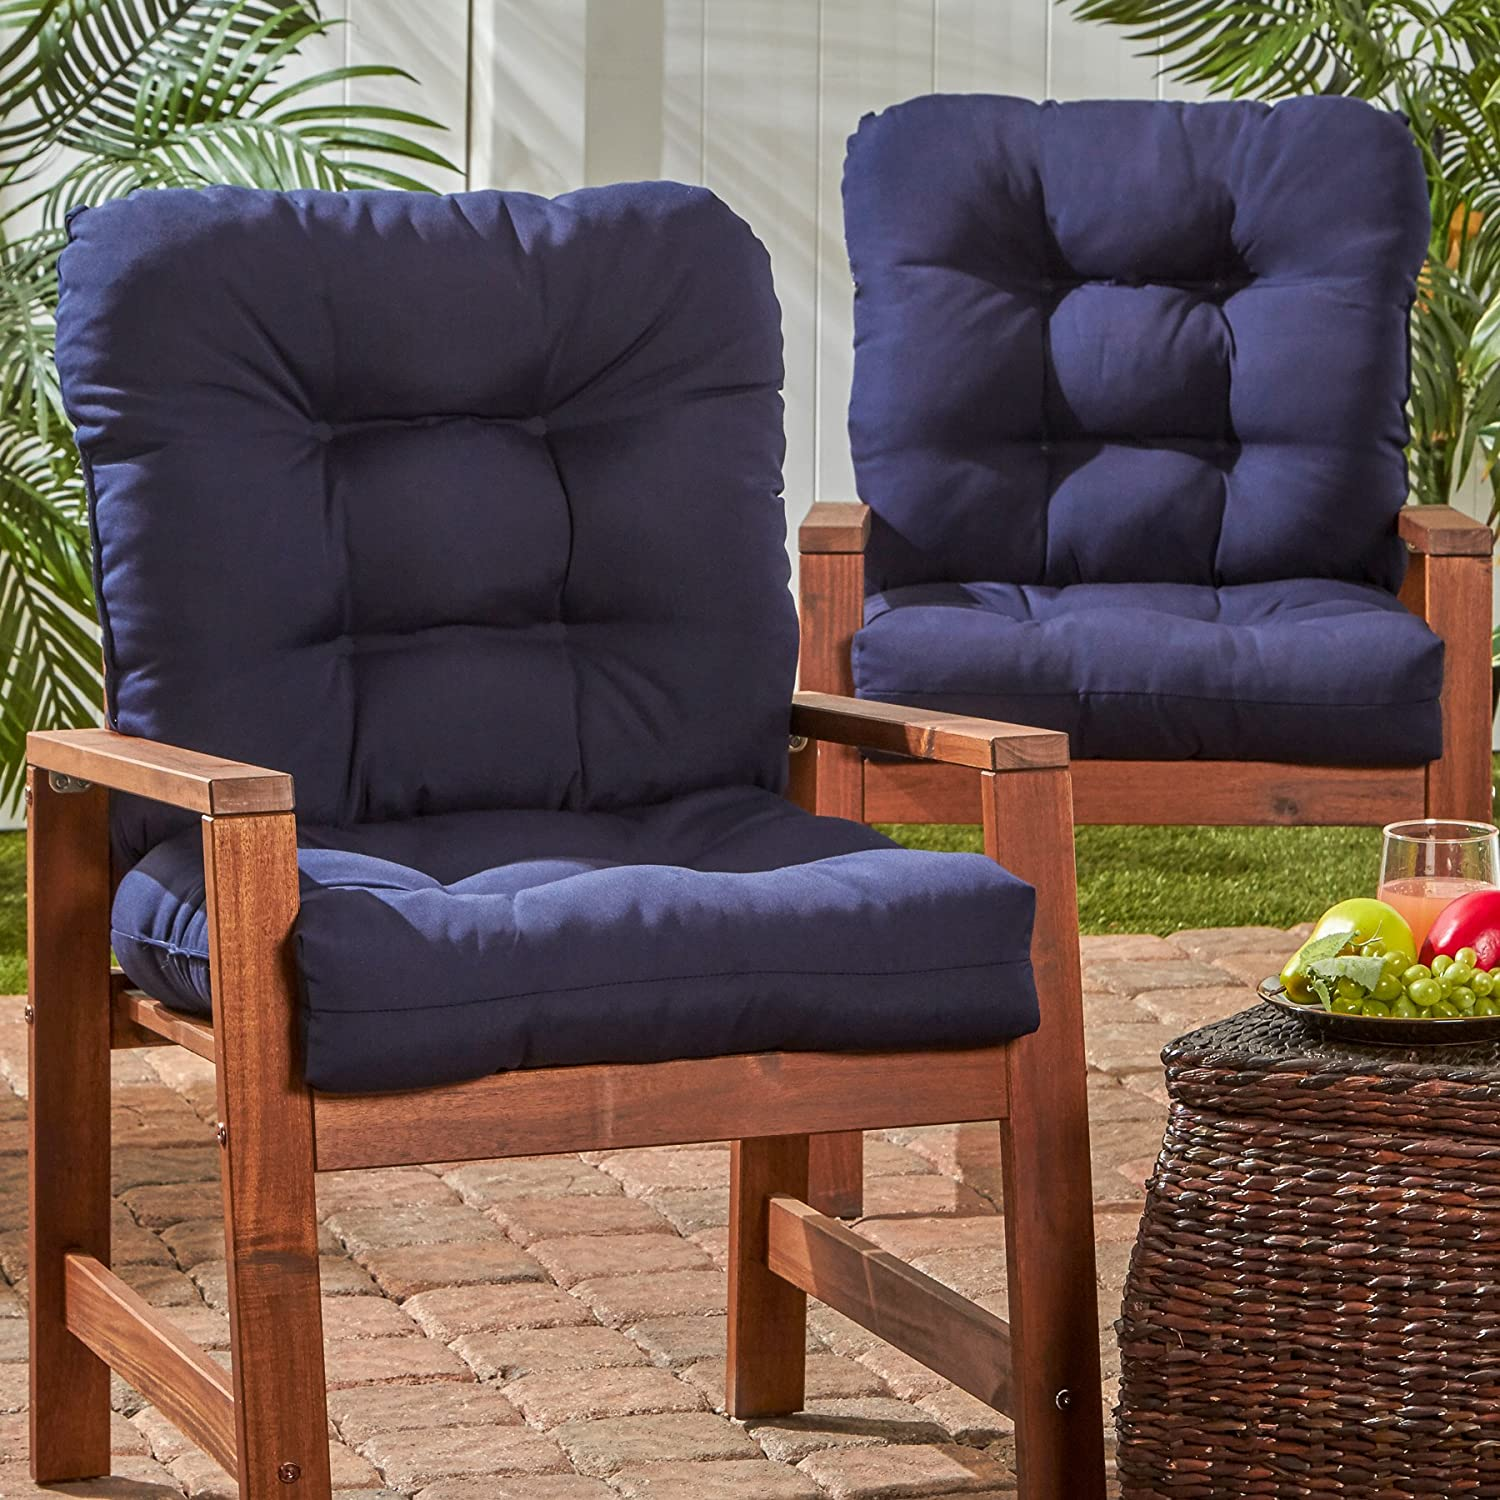 Greendale Home Fashions Outdoor Seat Back Chair Cushion set of 2 , Navy